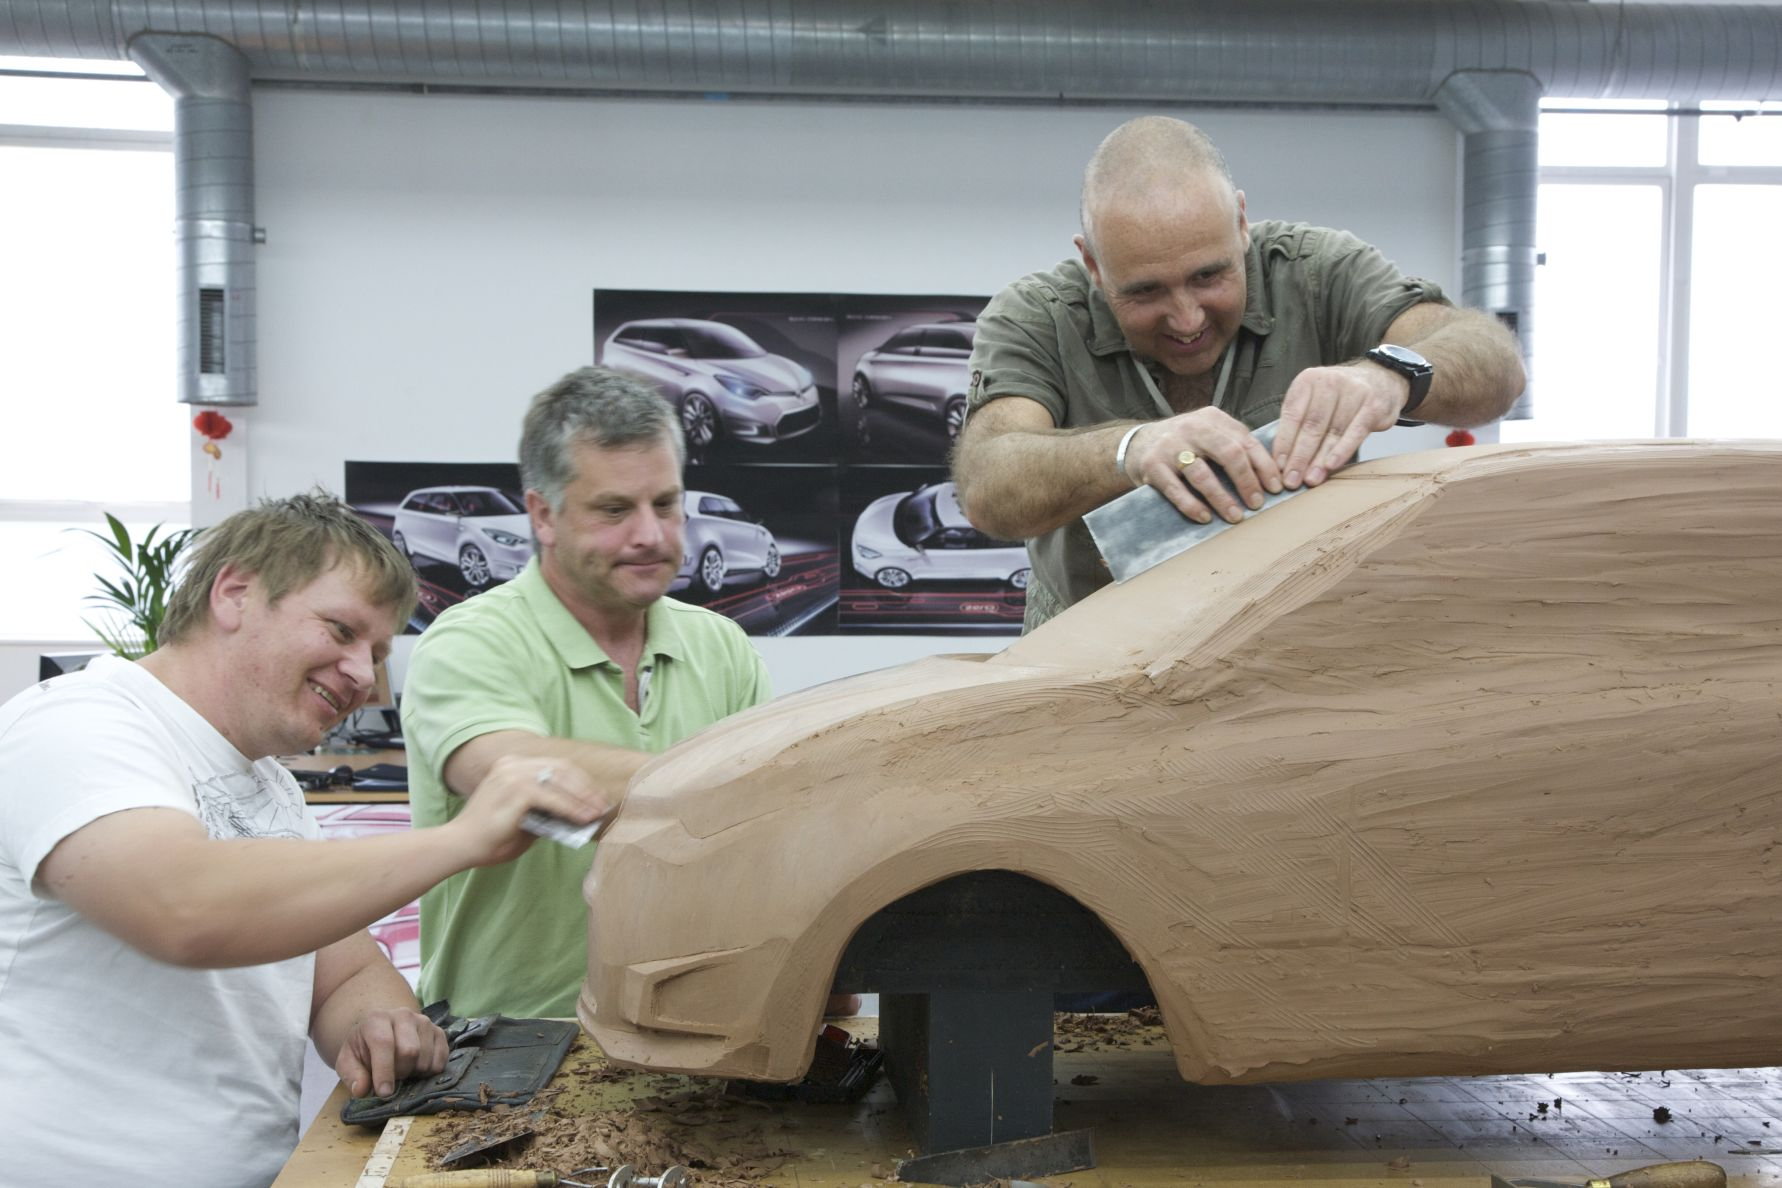 Despite all the computer tech, there's still a place for Clay Modellers